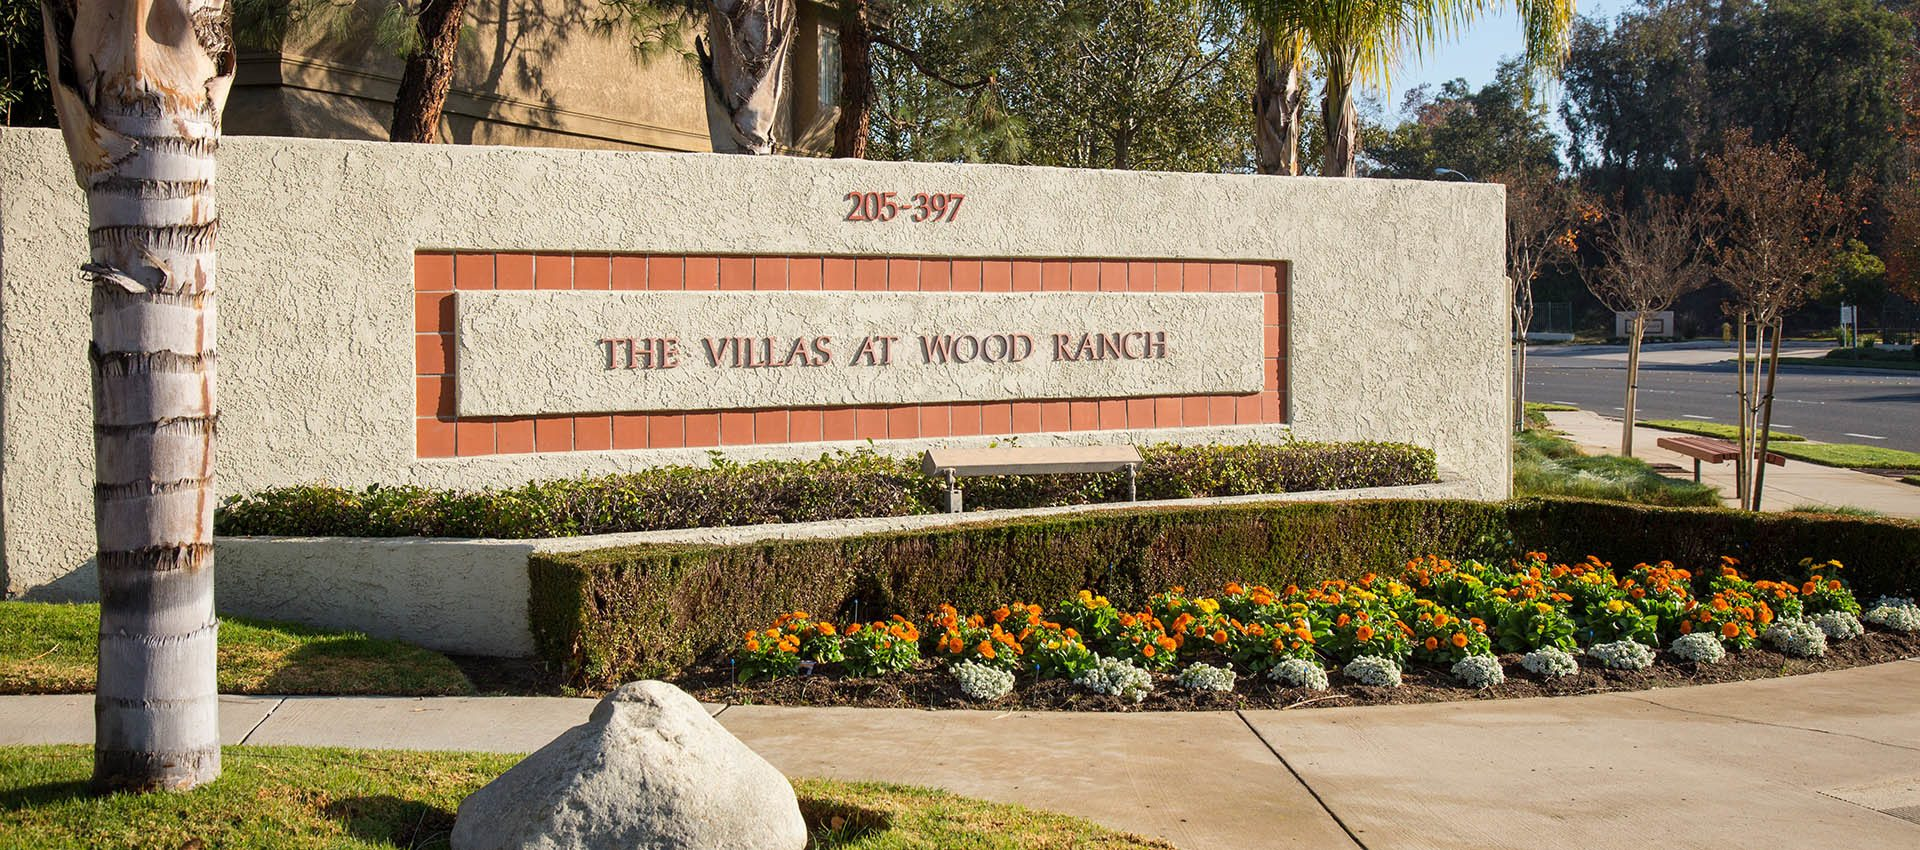 Signage at The Villas & Overlook at Woodranch Apartment Homes in Simi Valley, CA